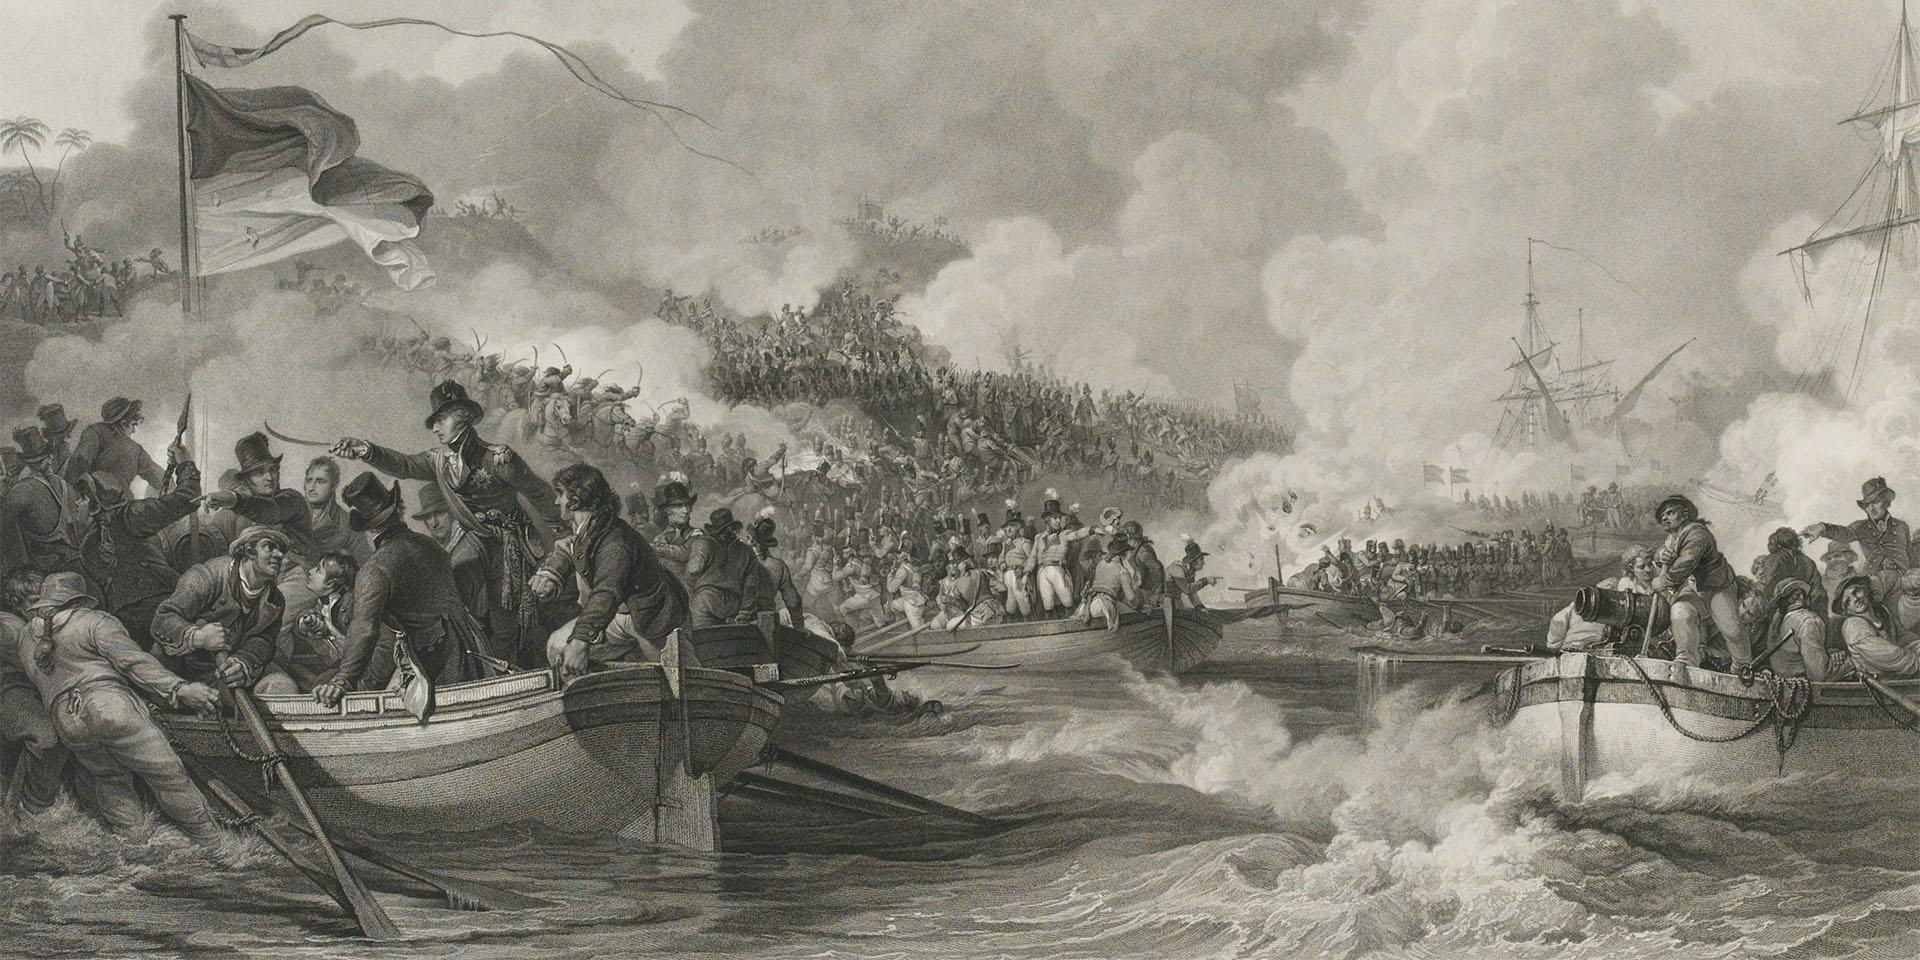 The landing of the British troops in Egypt, 8 March 1801